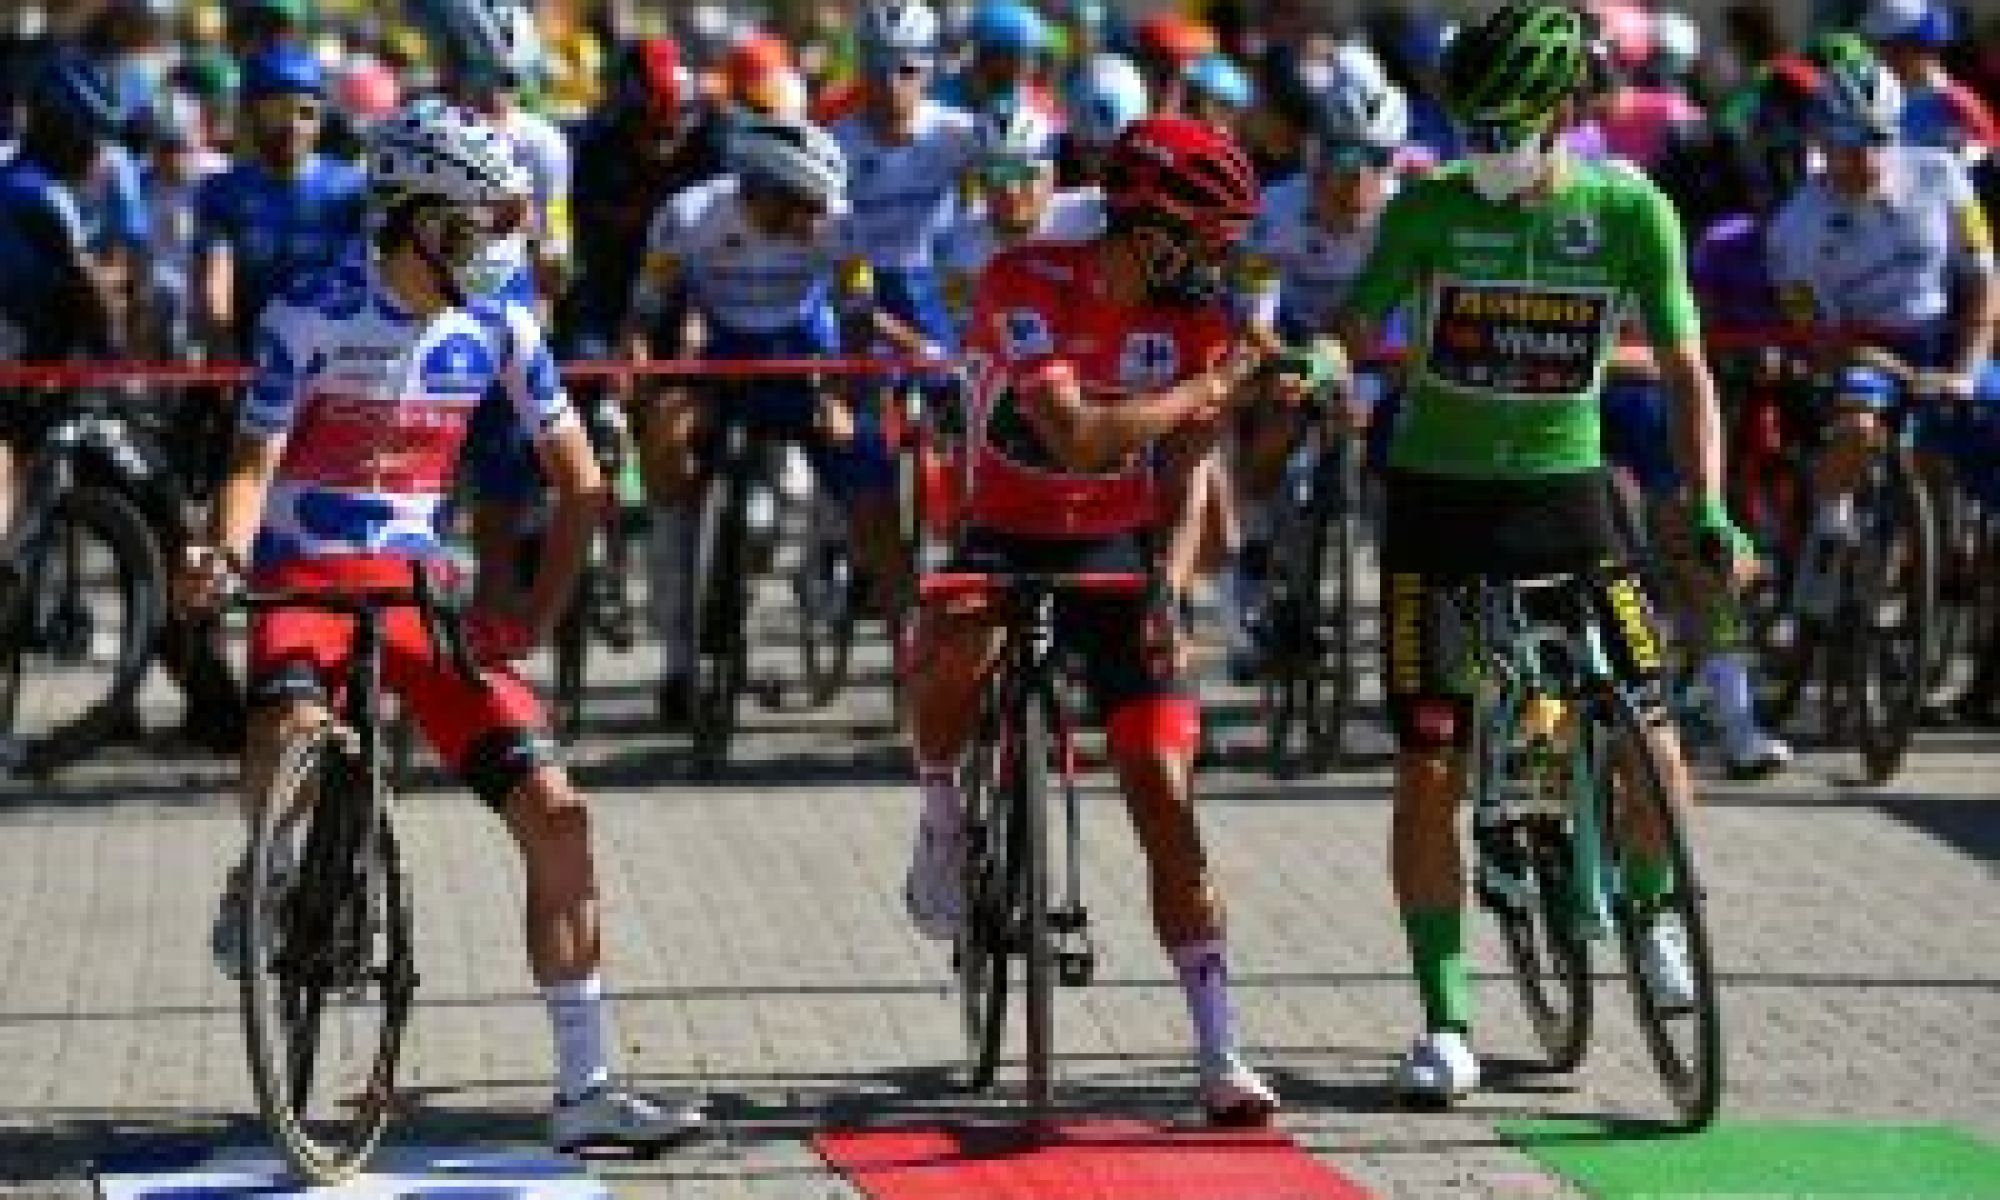 <div>'We have come together': Vuelta a España riders release statement addressing protest</div>